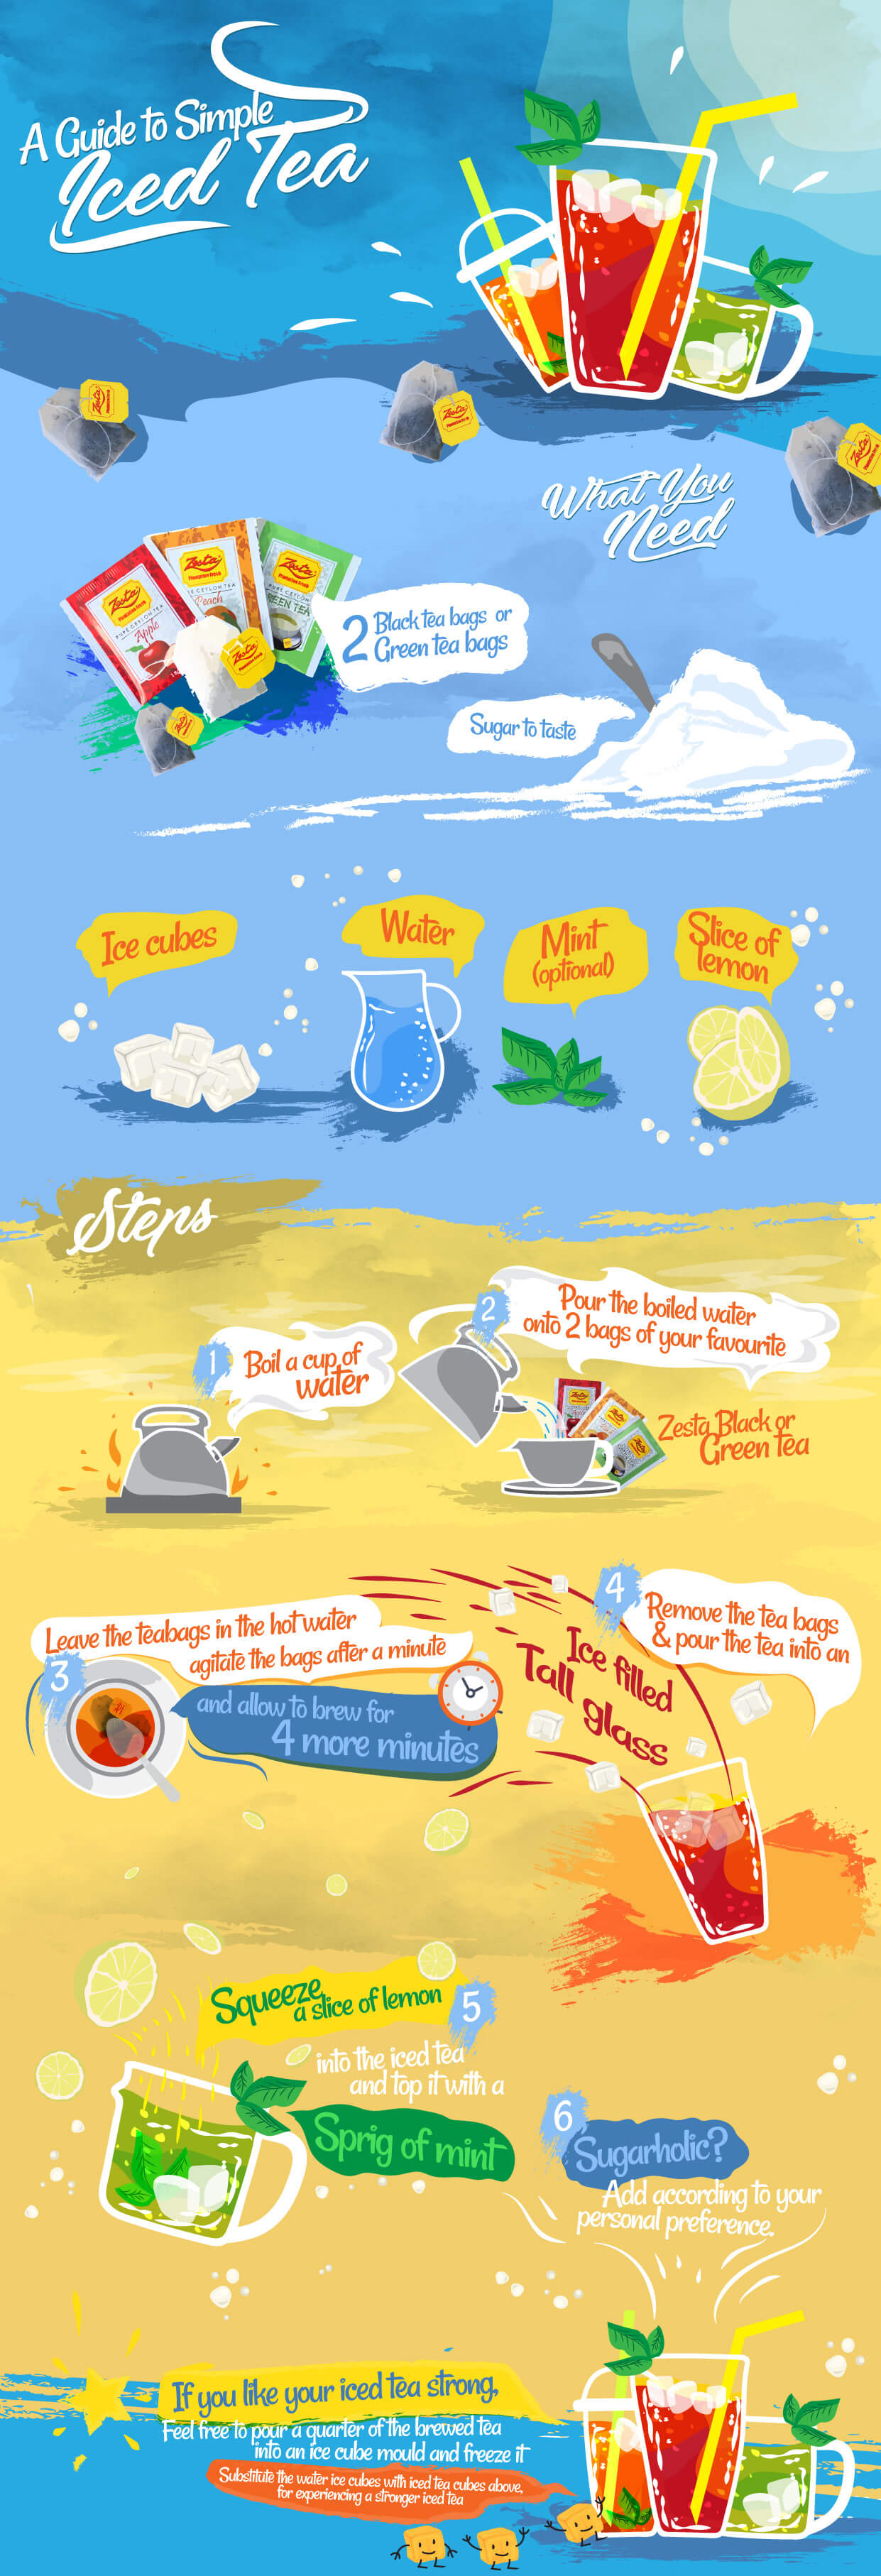 A-Guide-to-Simple-Iced-Tea-infographic-plaza